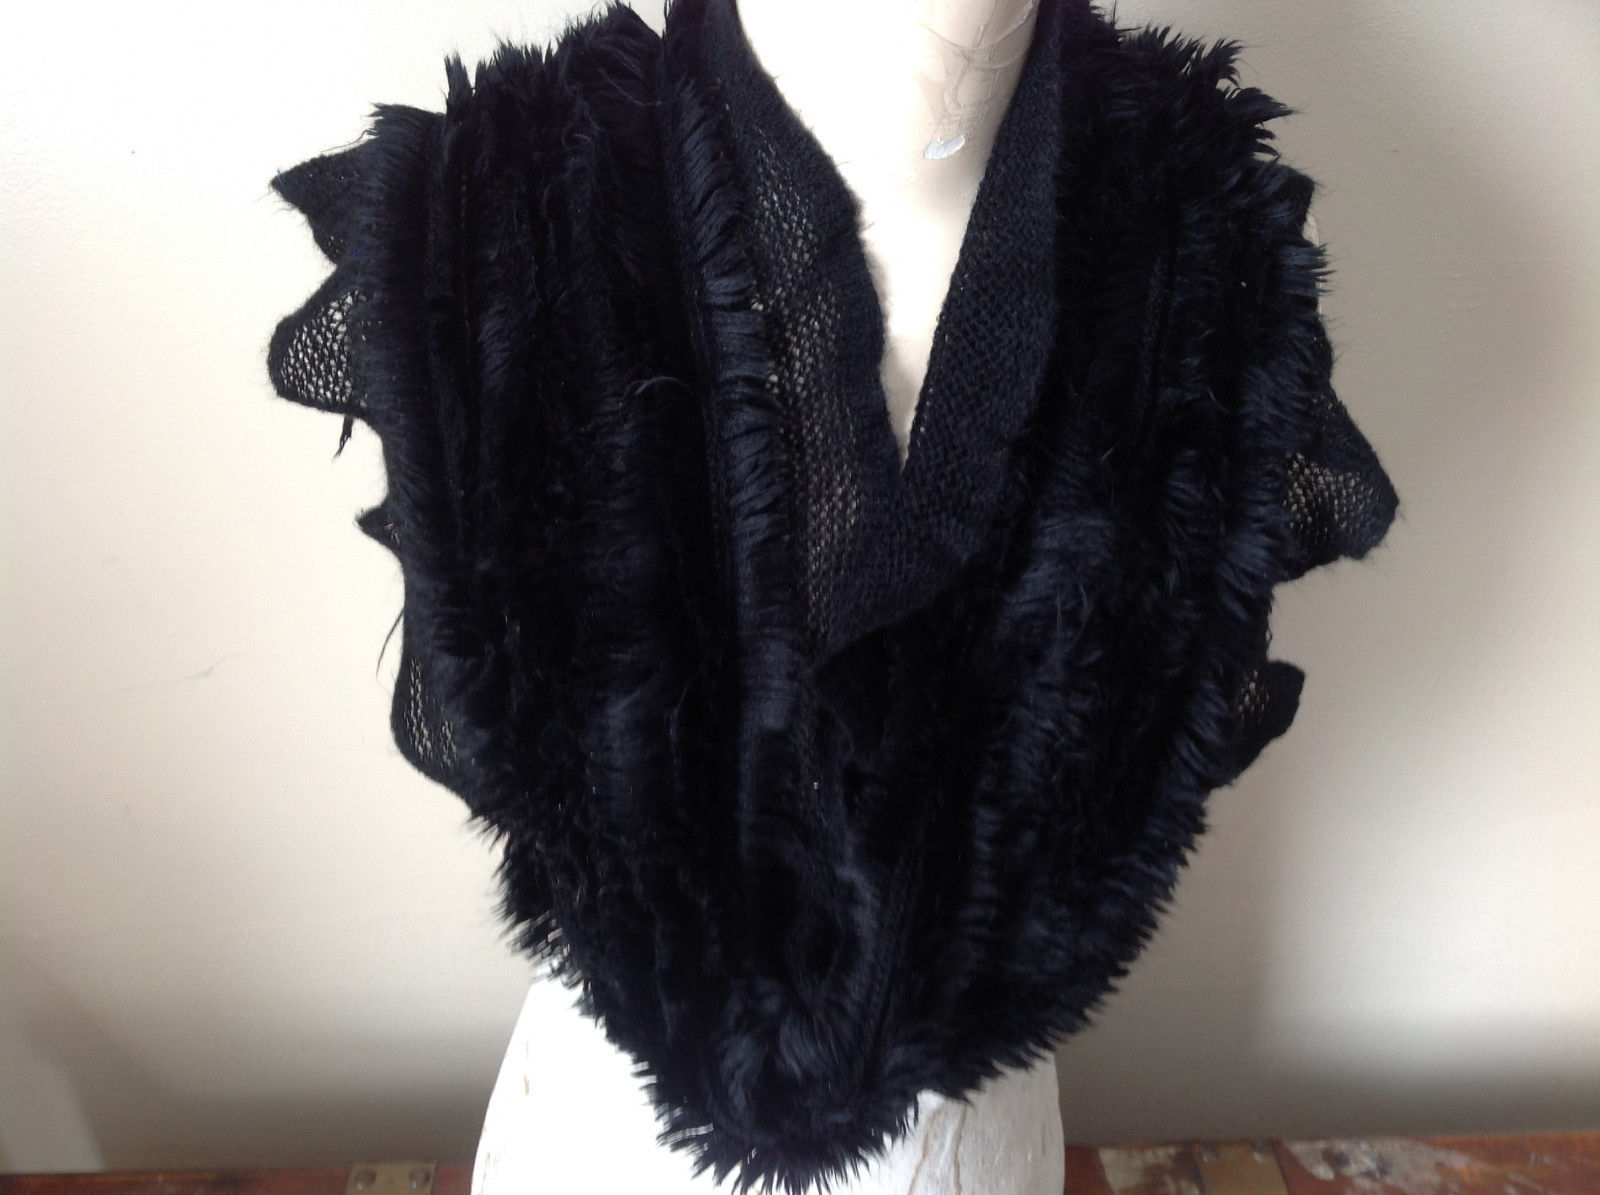 Primary image for Frilly Furry faux fur Black Infinity Scarf See Measurements Below